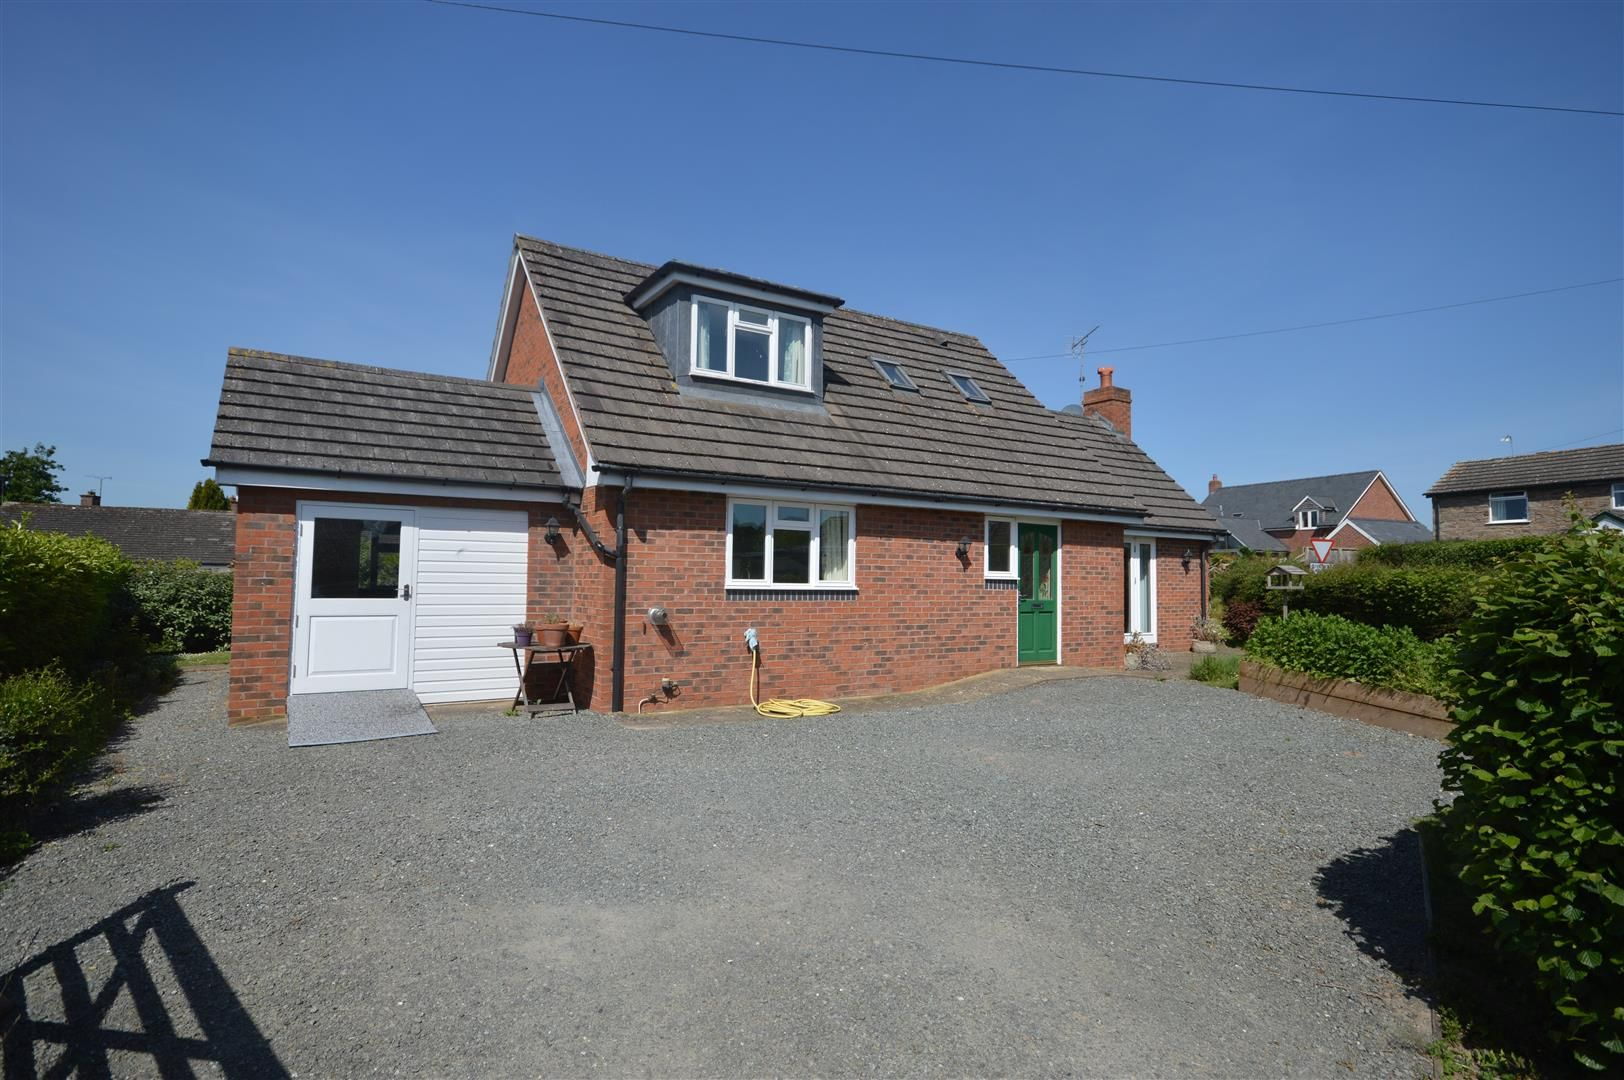 3 bed detached-bungalow for sale in Almeley, HR3